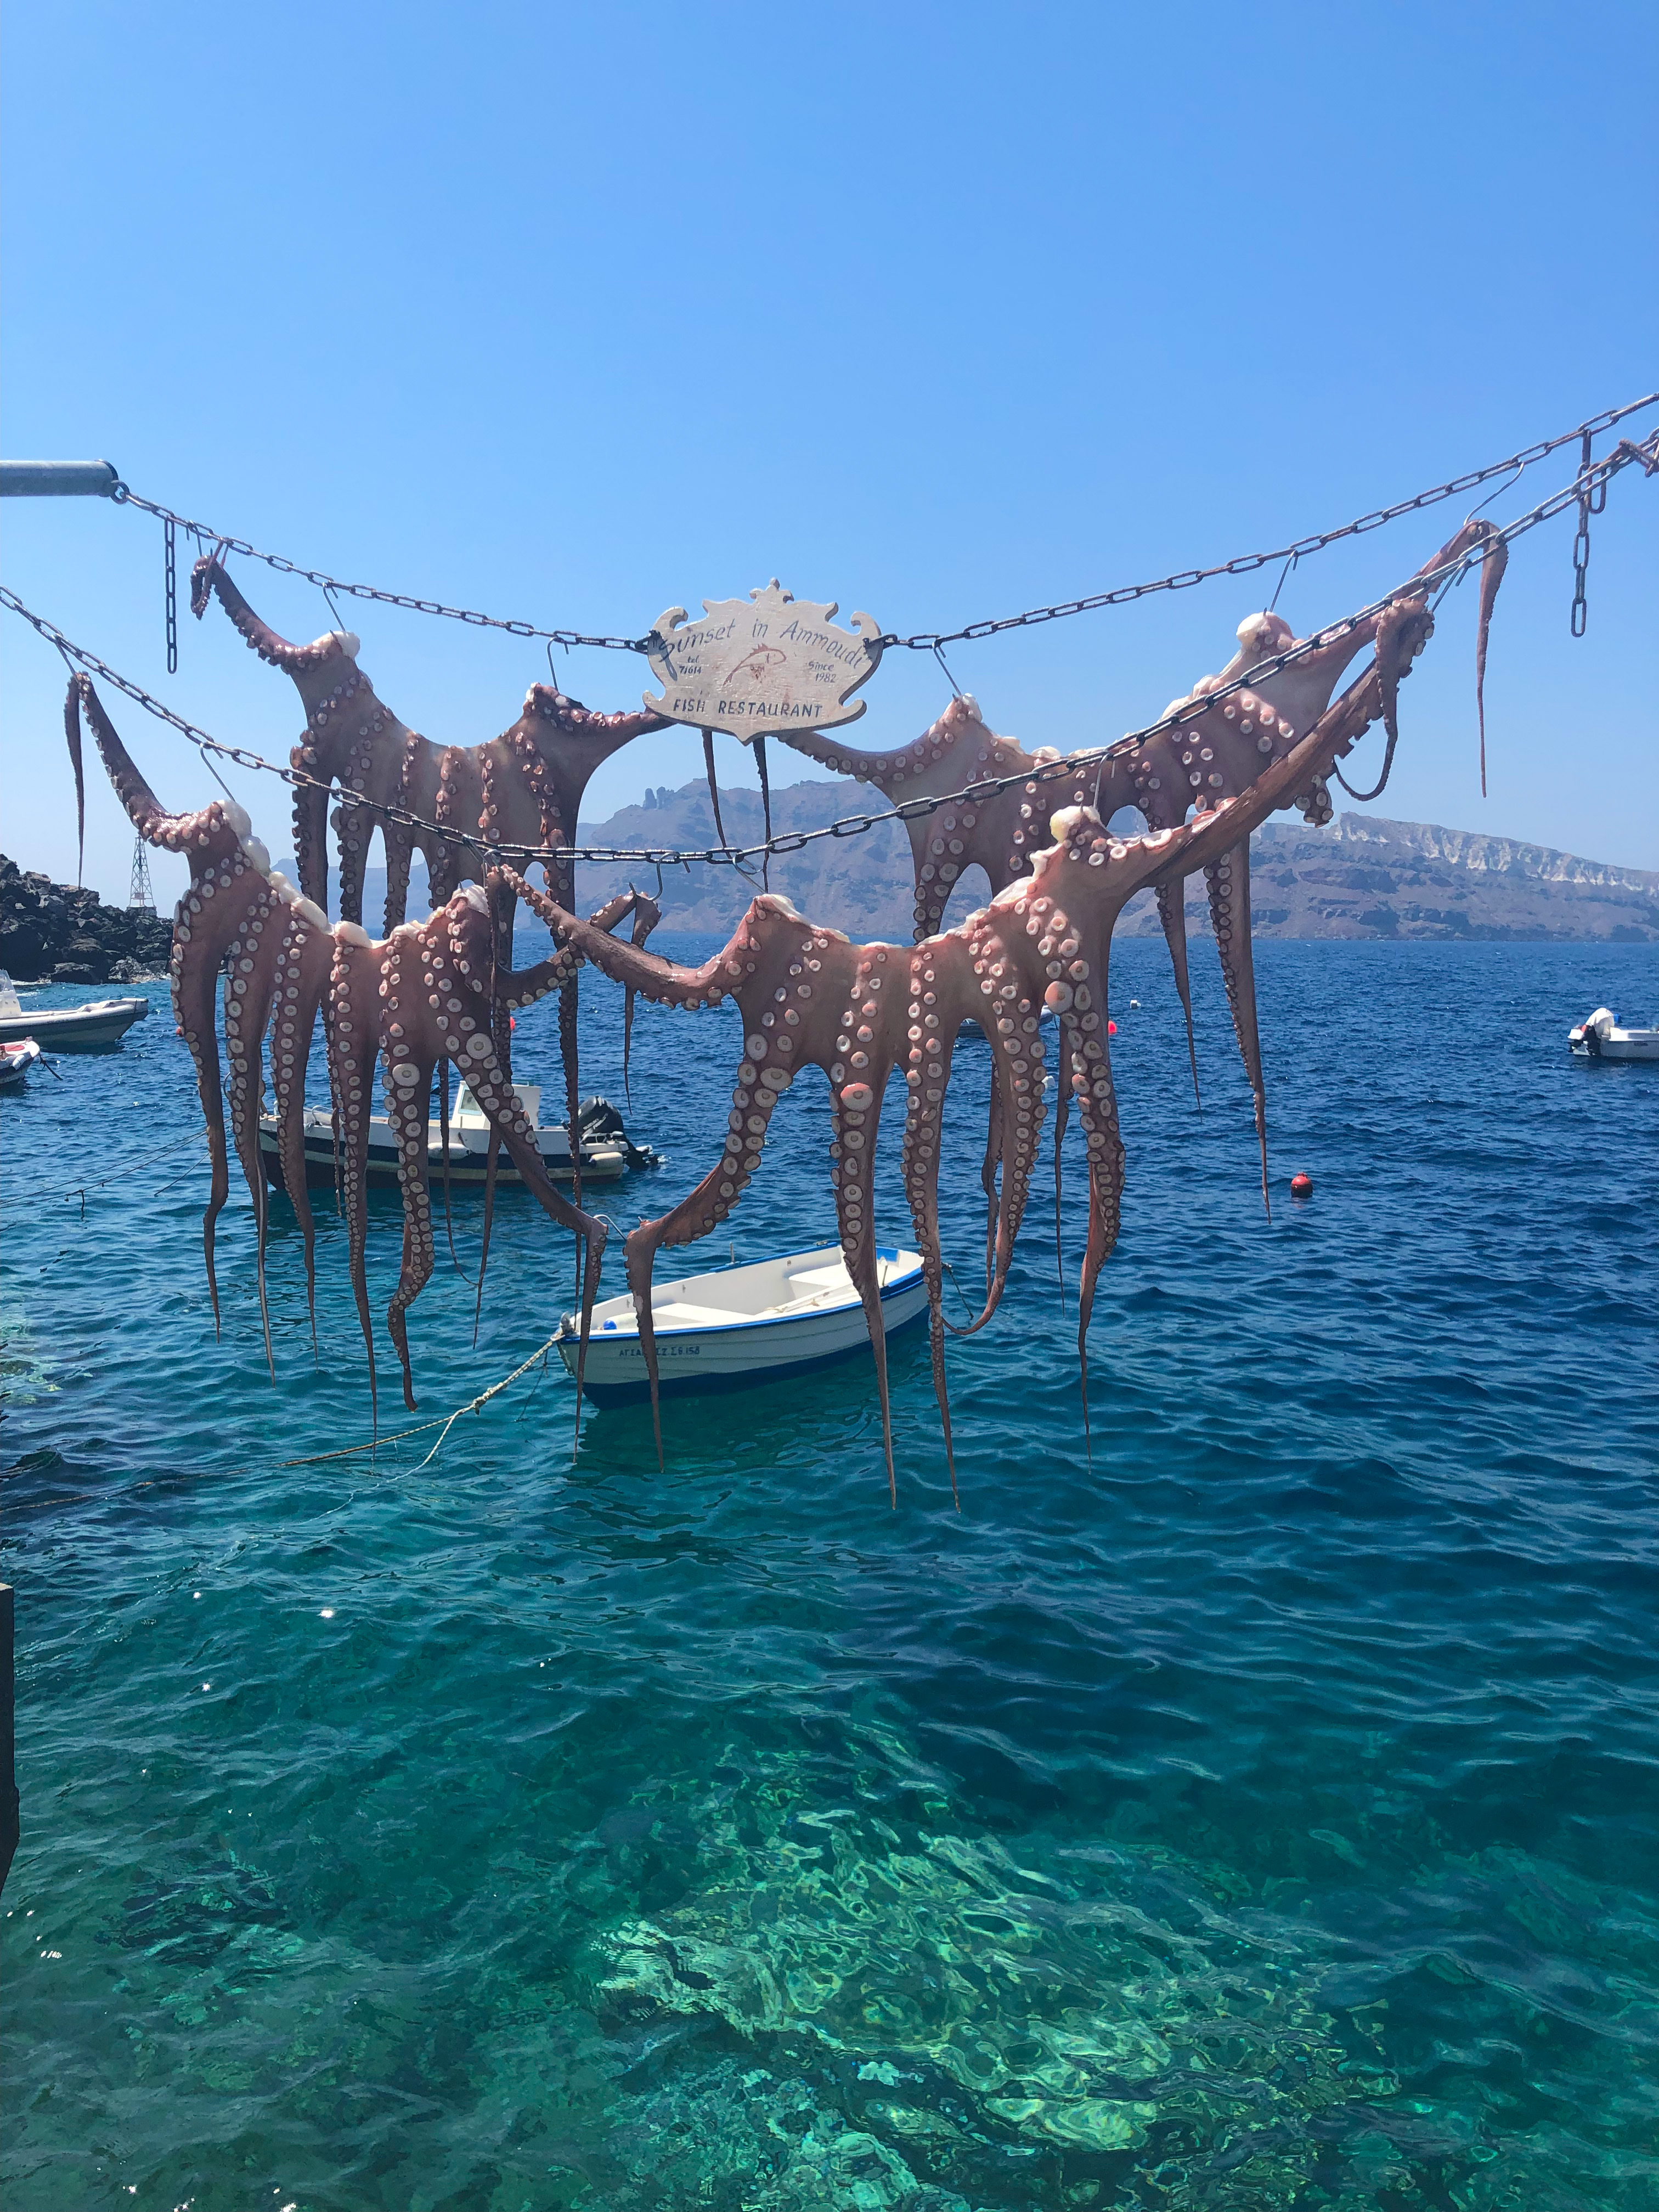 Octopus drying in the sun at Amoudi Bay, hanging over the water with boats anchored in the background.